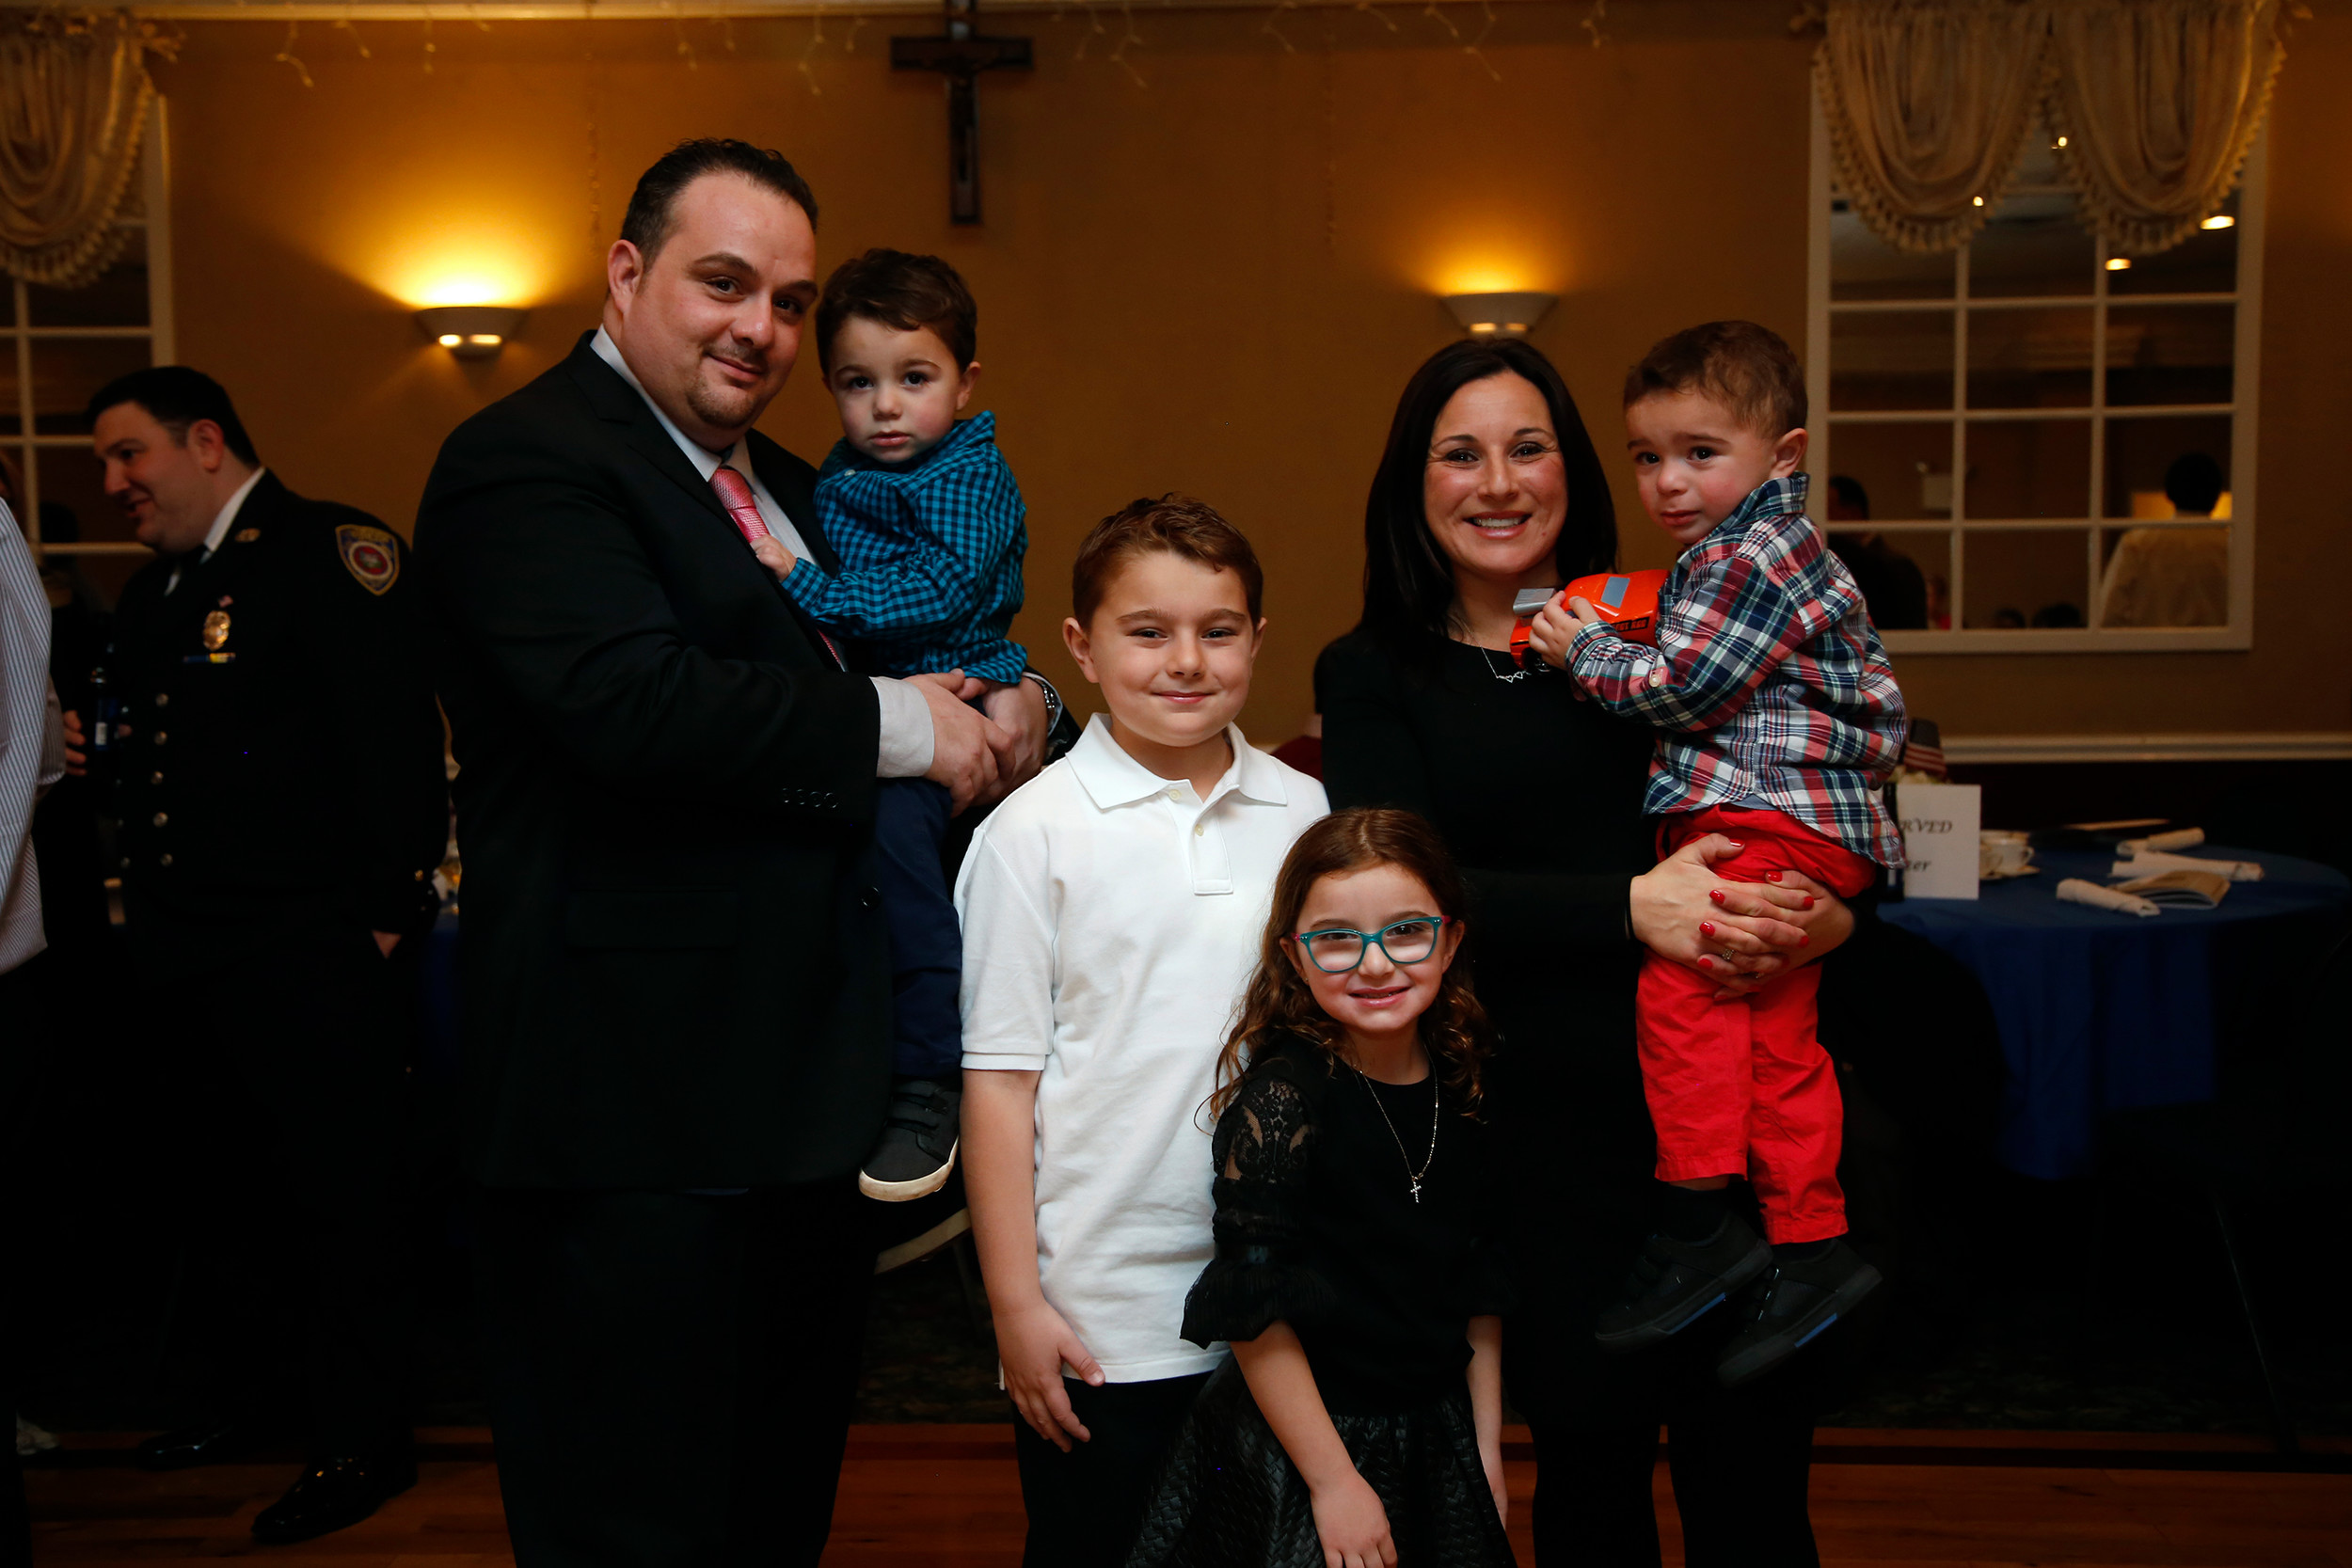 Bryan Lanzello, left, celebrated with his family after his company, Lanzello Roofing and Remodeling, Inc., was named Business of the Year at Lynbrook Mayor Bill Hendrick's annual awards ceremony at the Saint Mary's Knights of Columbus on Feb. 17.